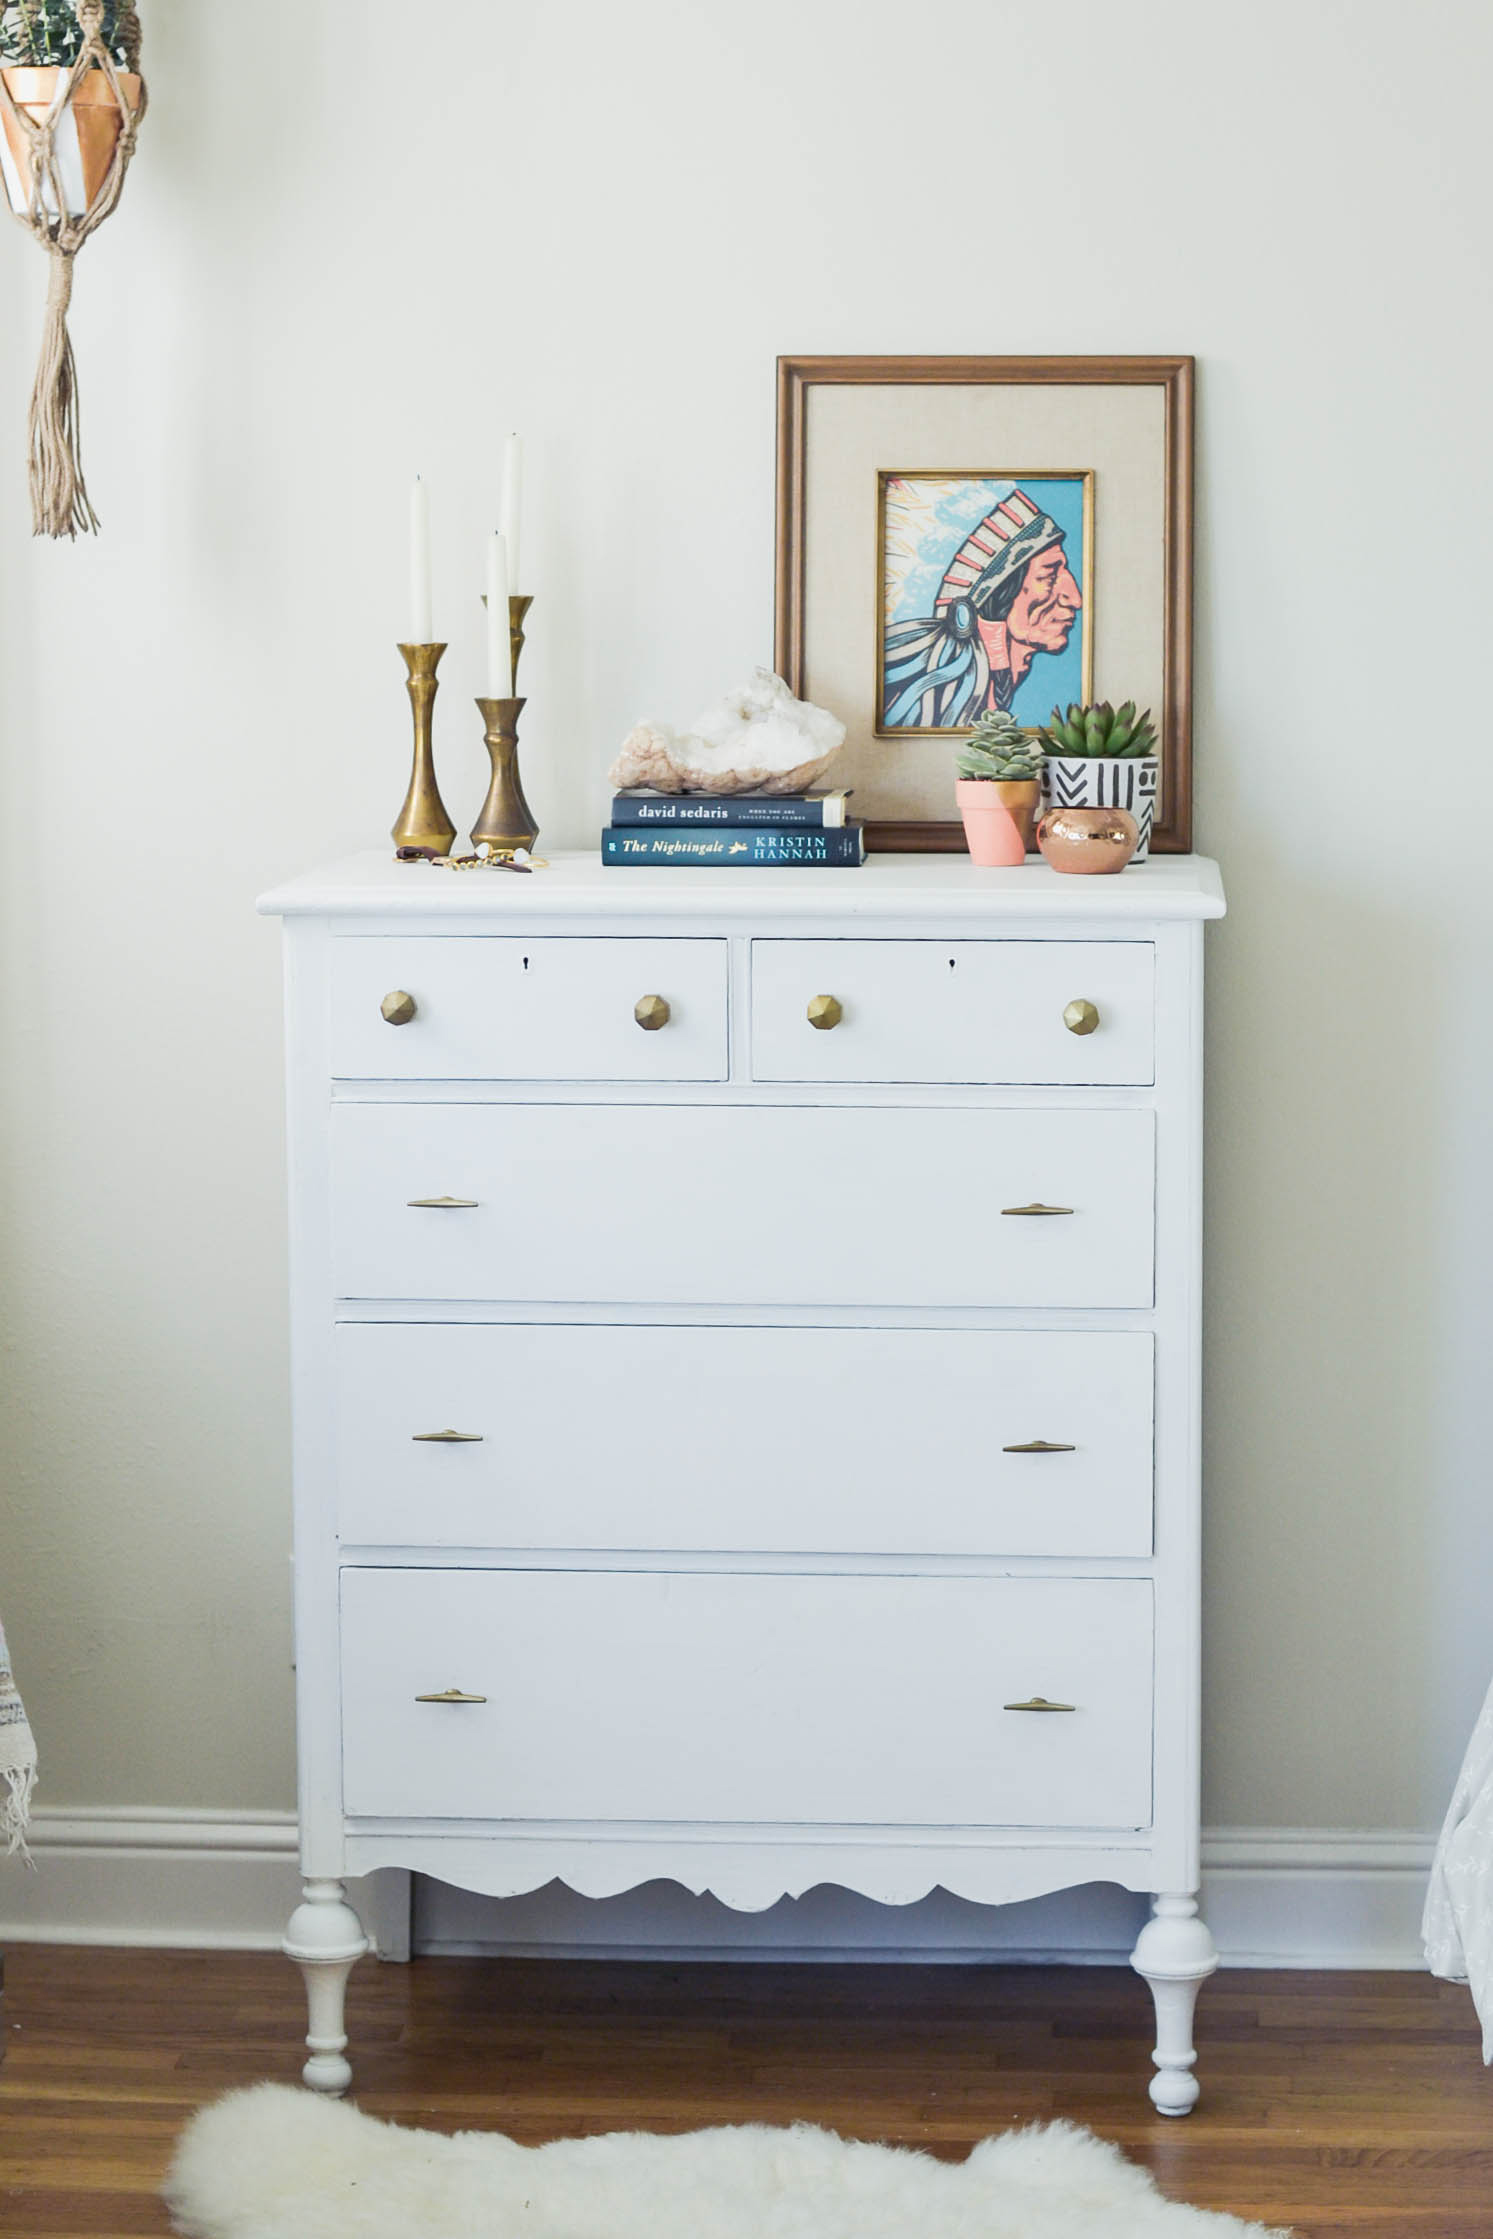 designs cabinet dresser that taste your knobs of hardware bowman antique match image vintage dressers kitchen details